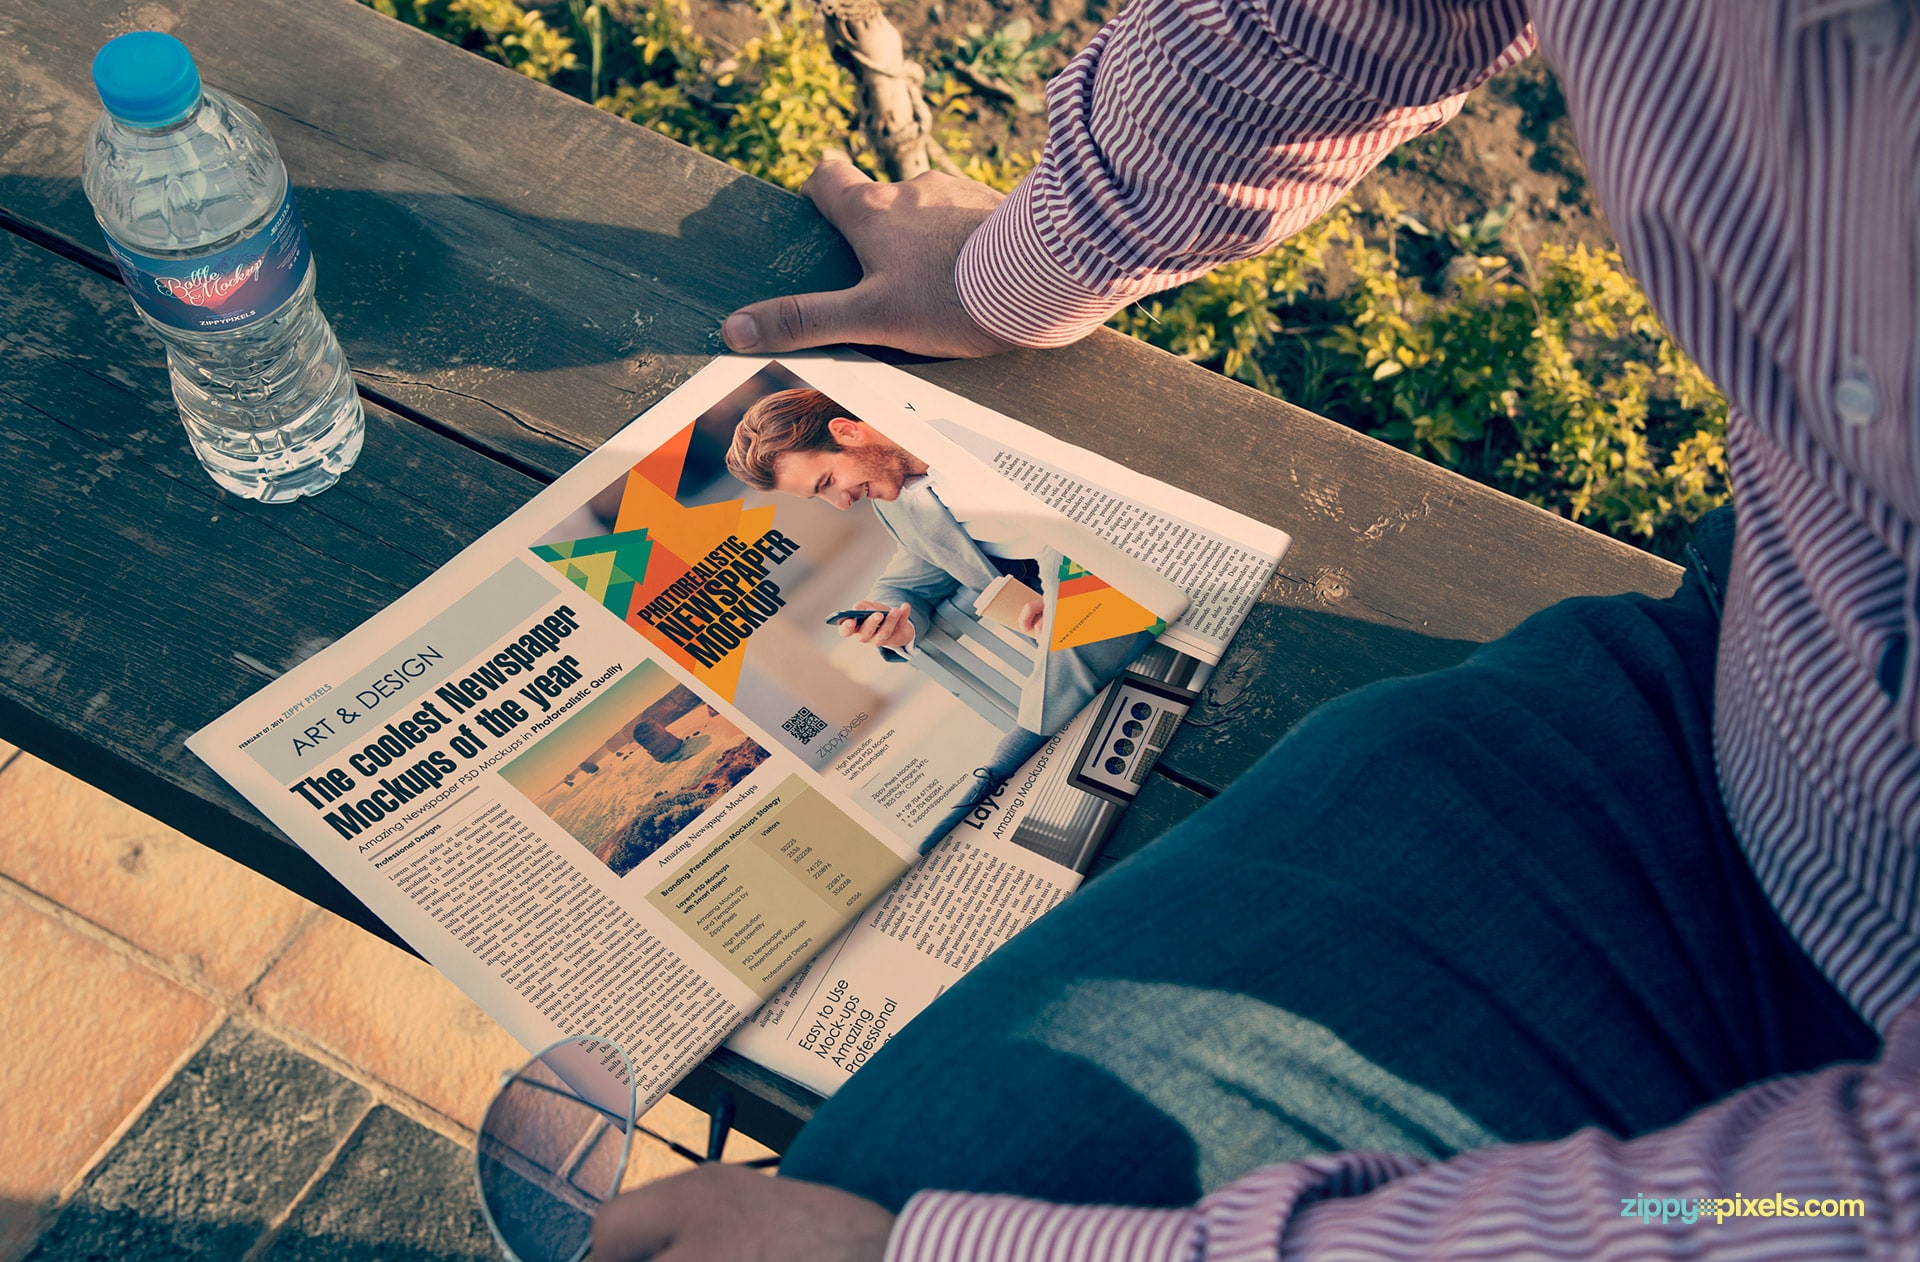 photorealistic newspaper mockup showing quarter page on half fold newspaper with water bottle sitting on bench